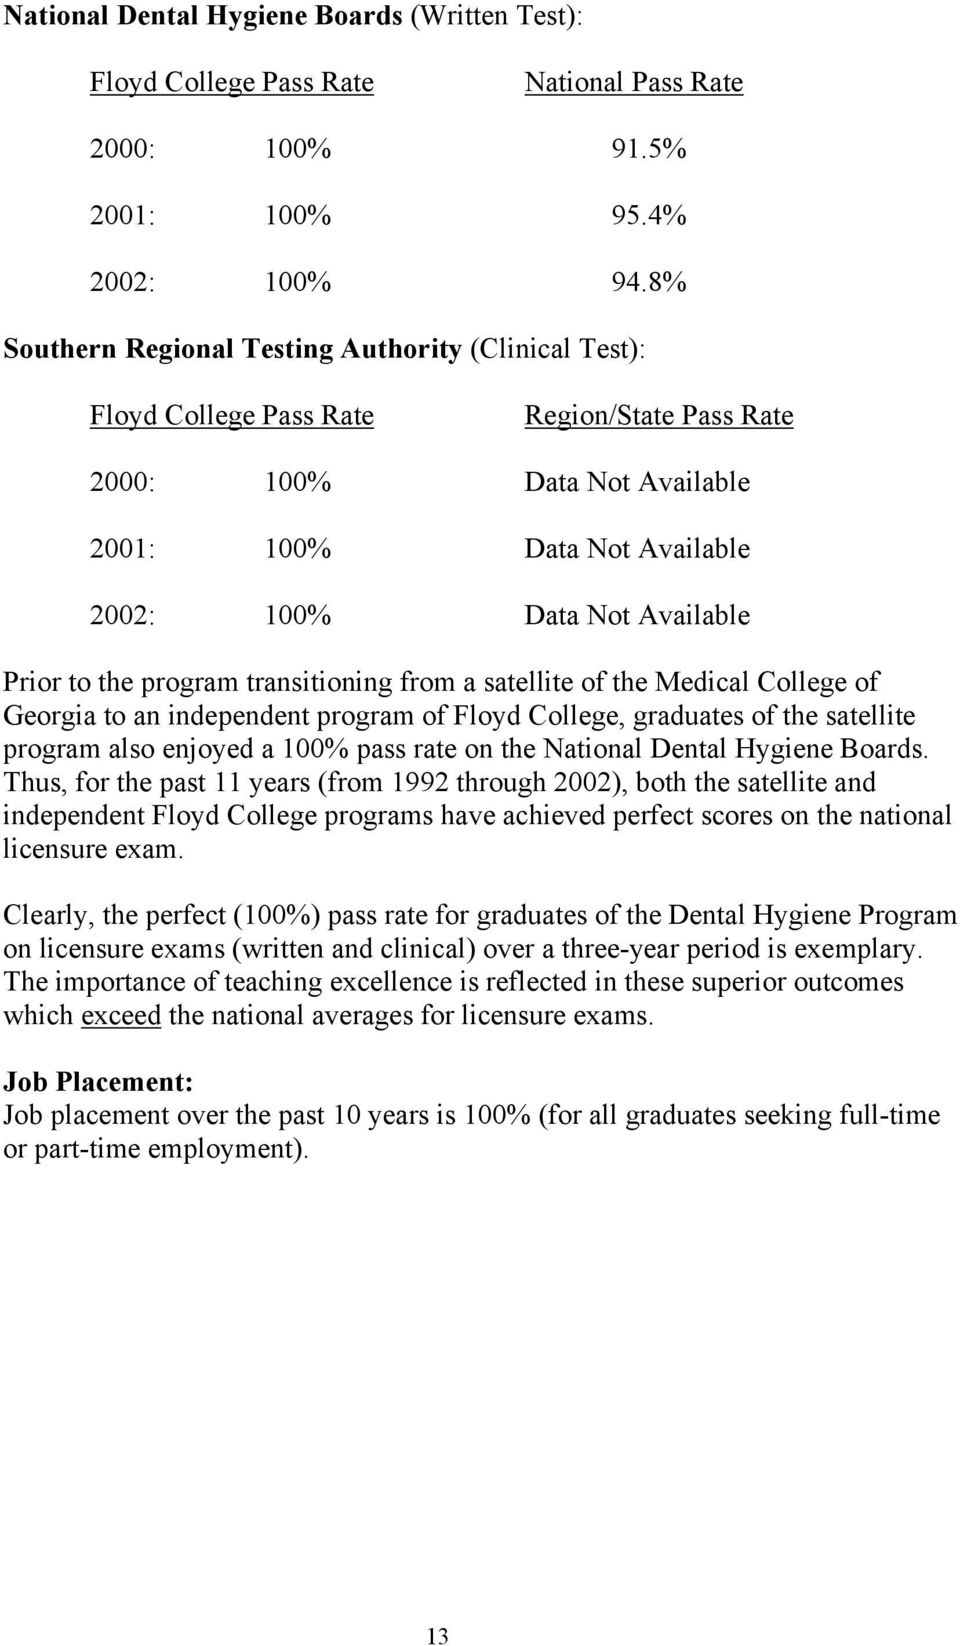 to the program transitioning from a satellite of the Medical College of Georgia to an independent program of Floyd College, graduates of the satellite program also enjoyed a 100% pass rate on the